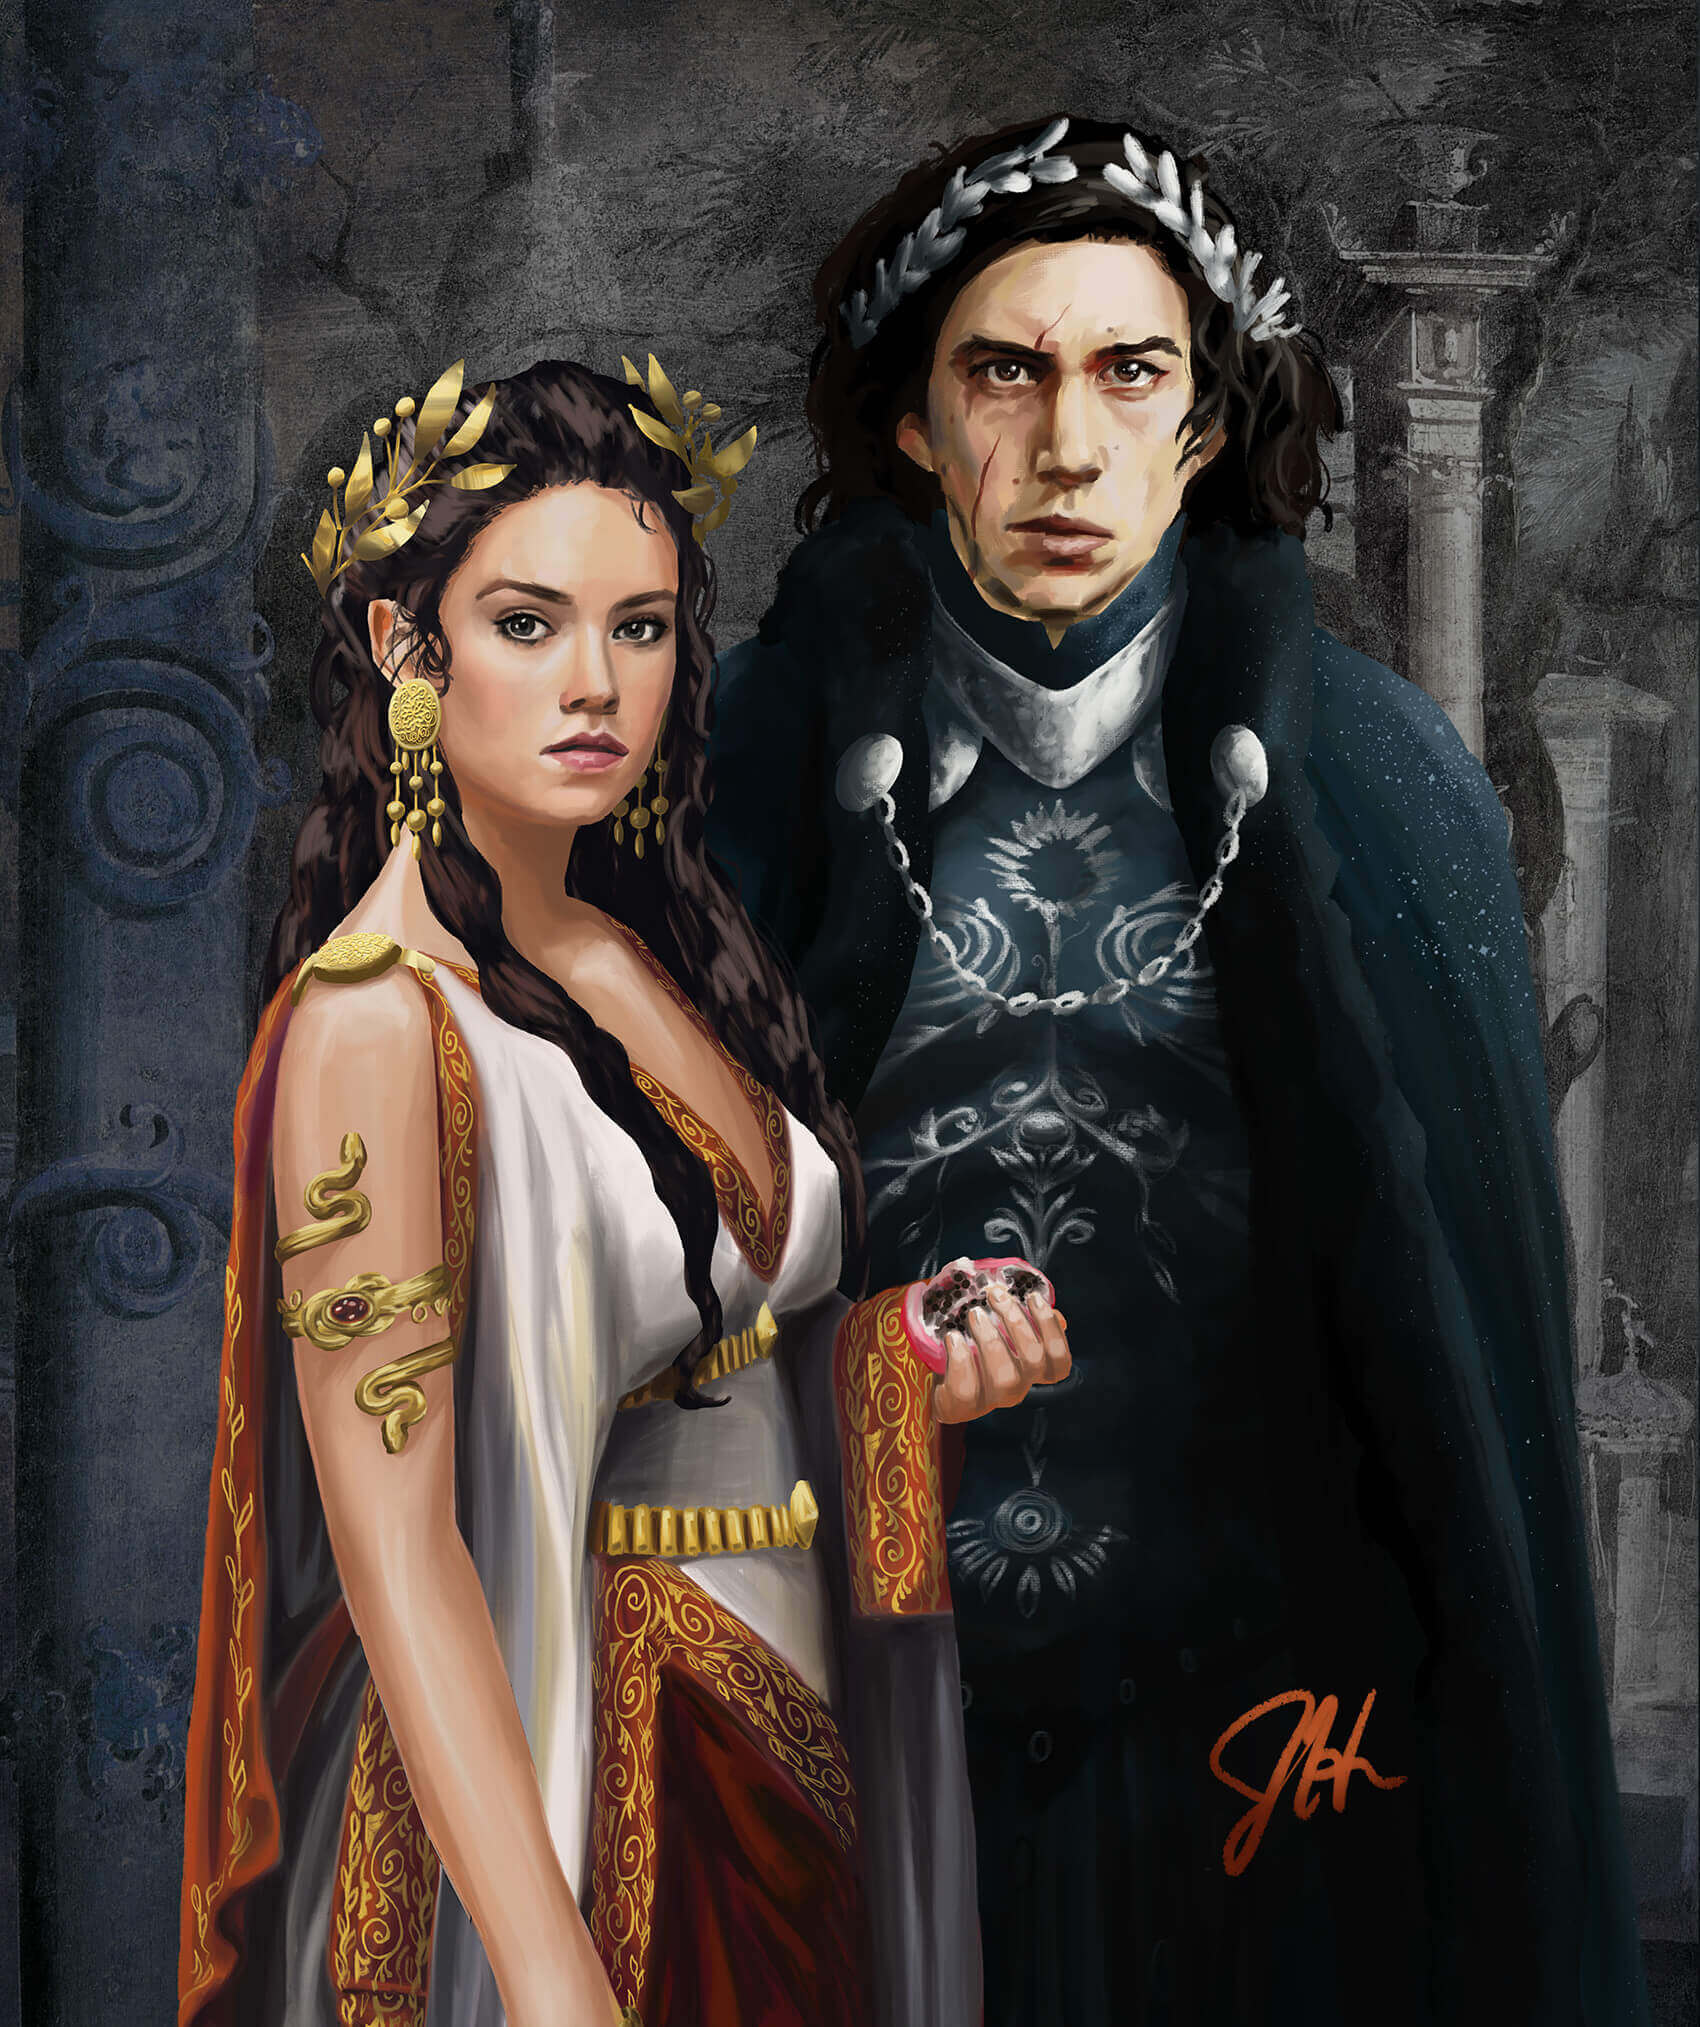 Hades & Persephone by Julia Harrison